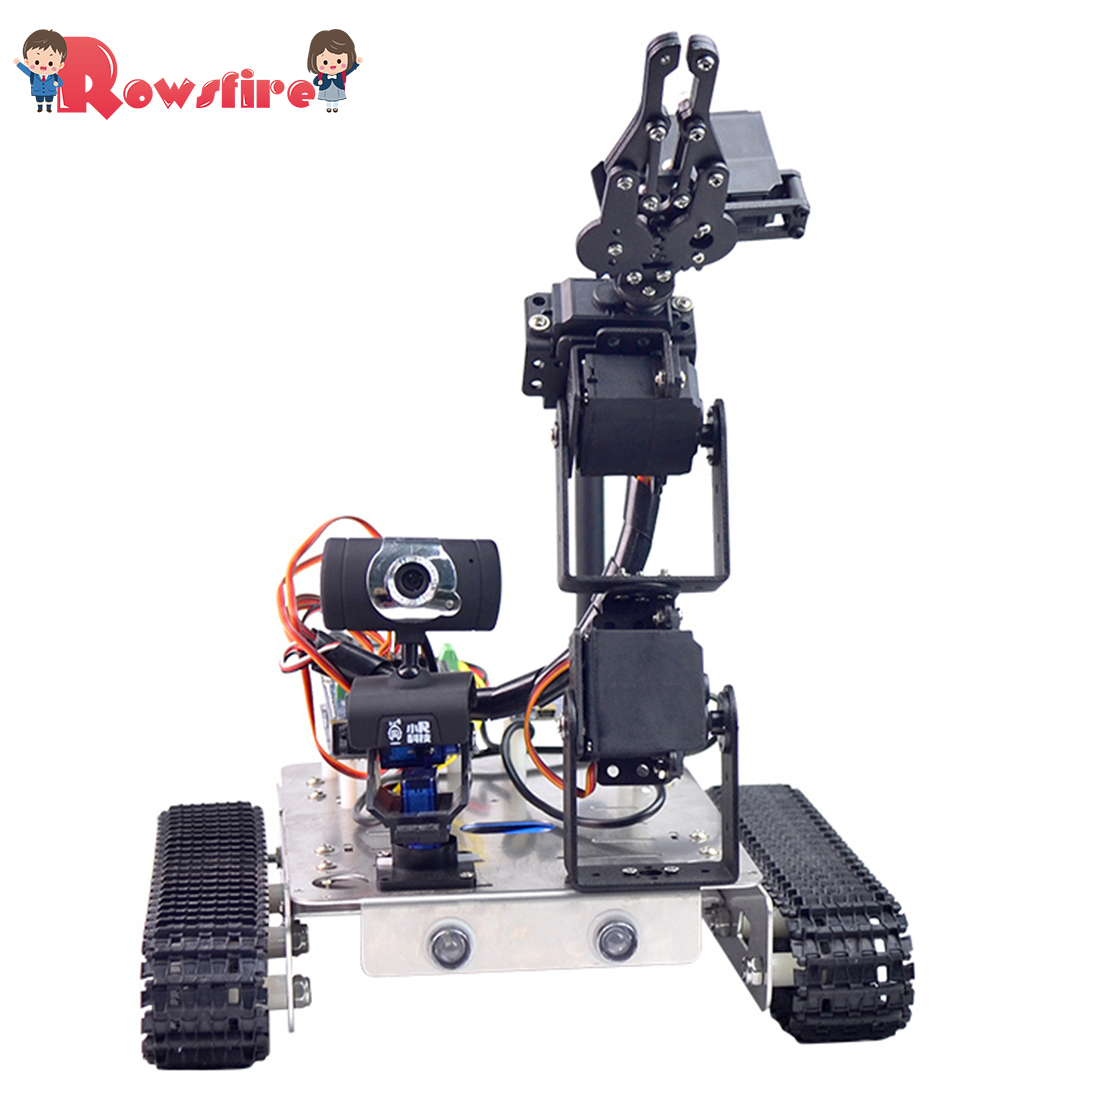 Programmable Robot DIY Wifi+Bluetooth Stainless Steel Chassis Track Tank Steam Educational Car with Arm for Raspberry Pi 4 1